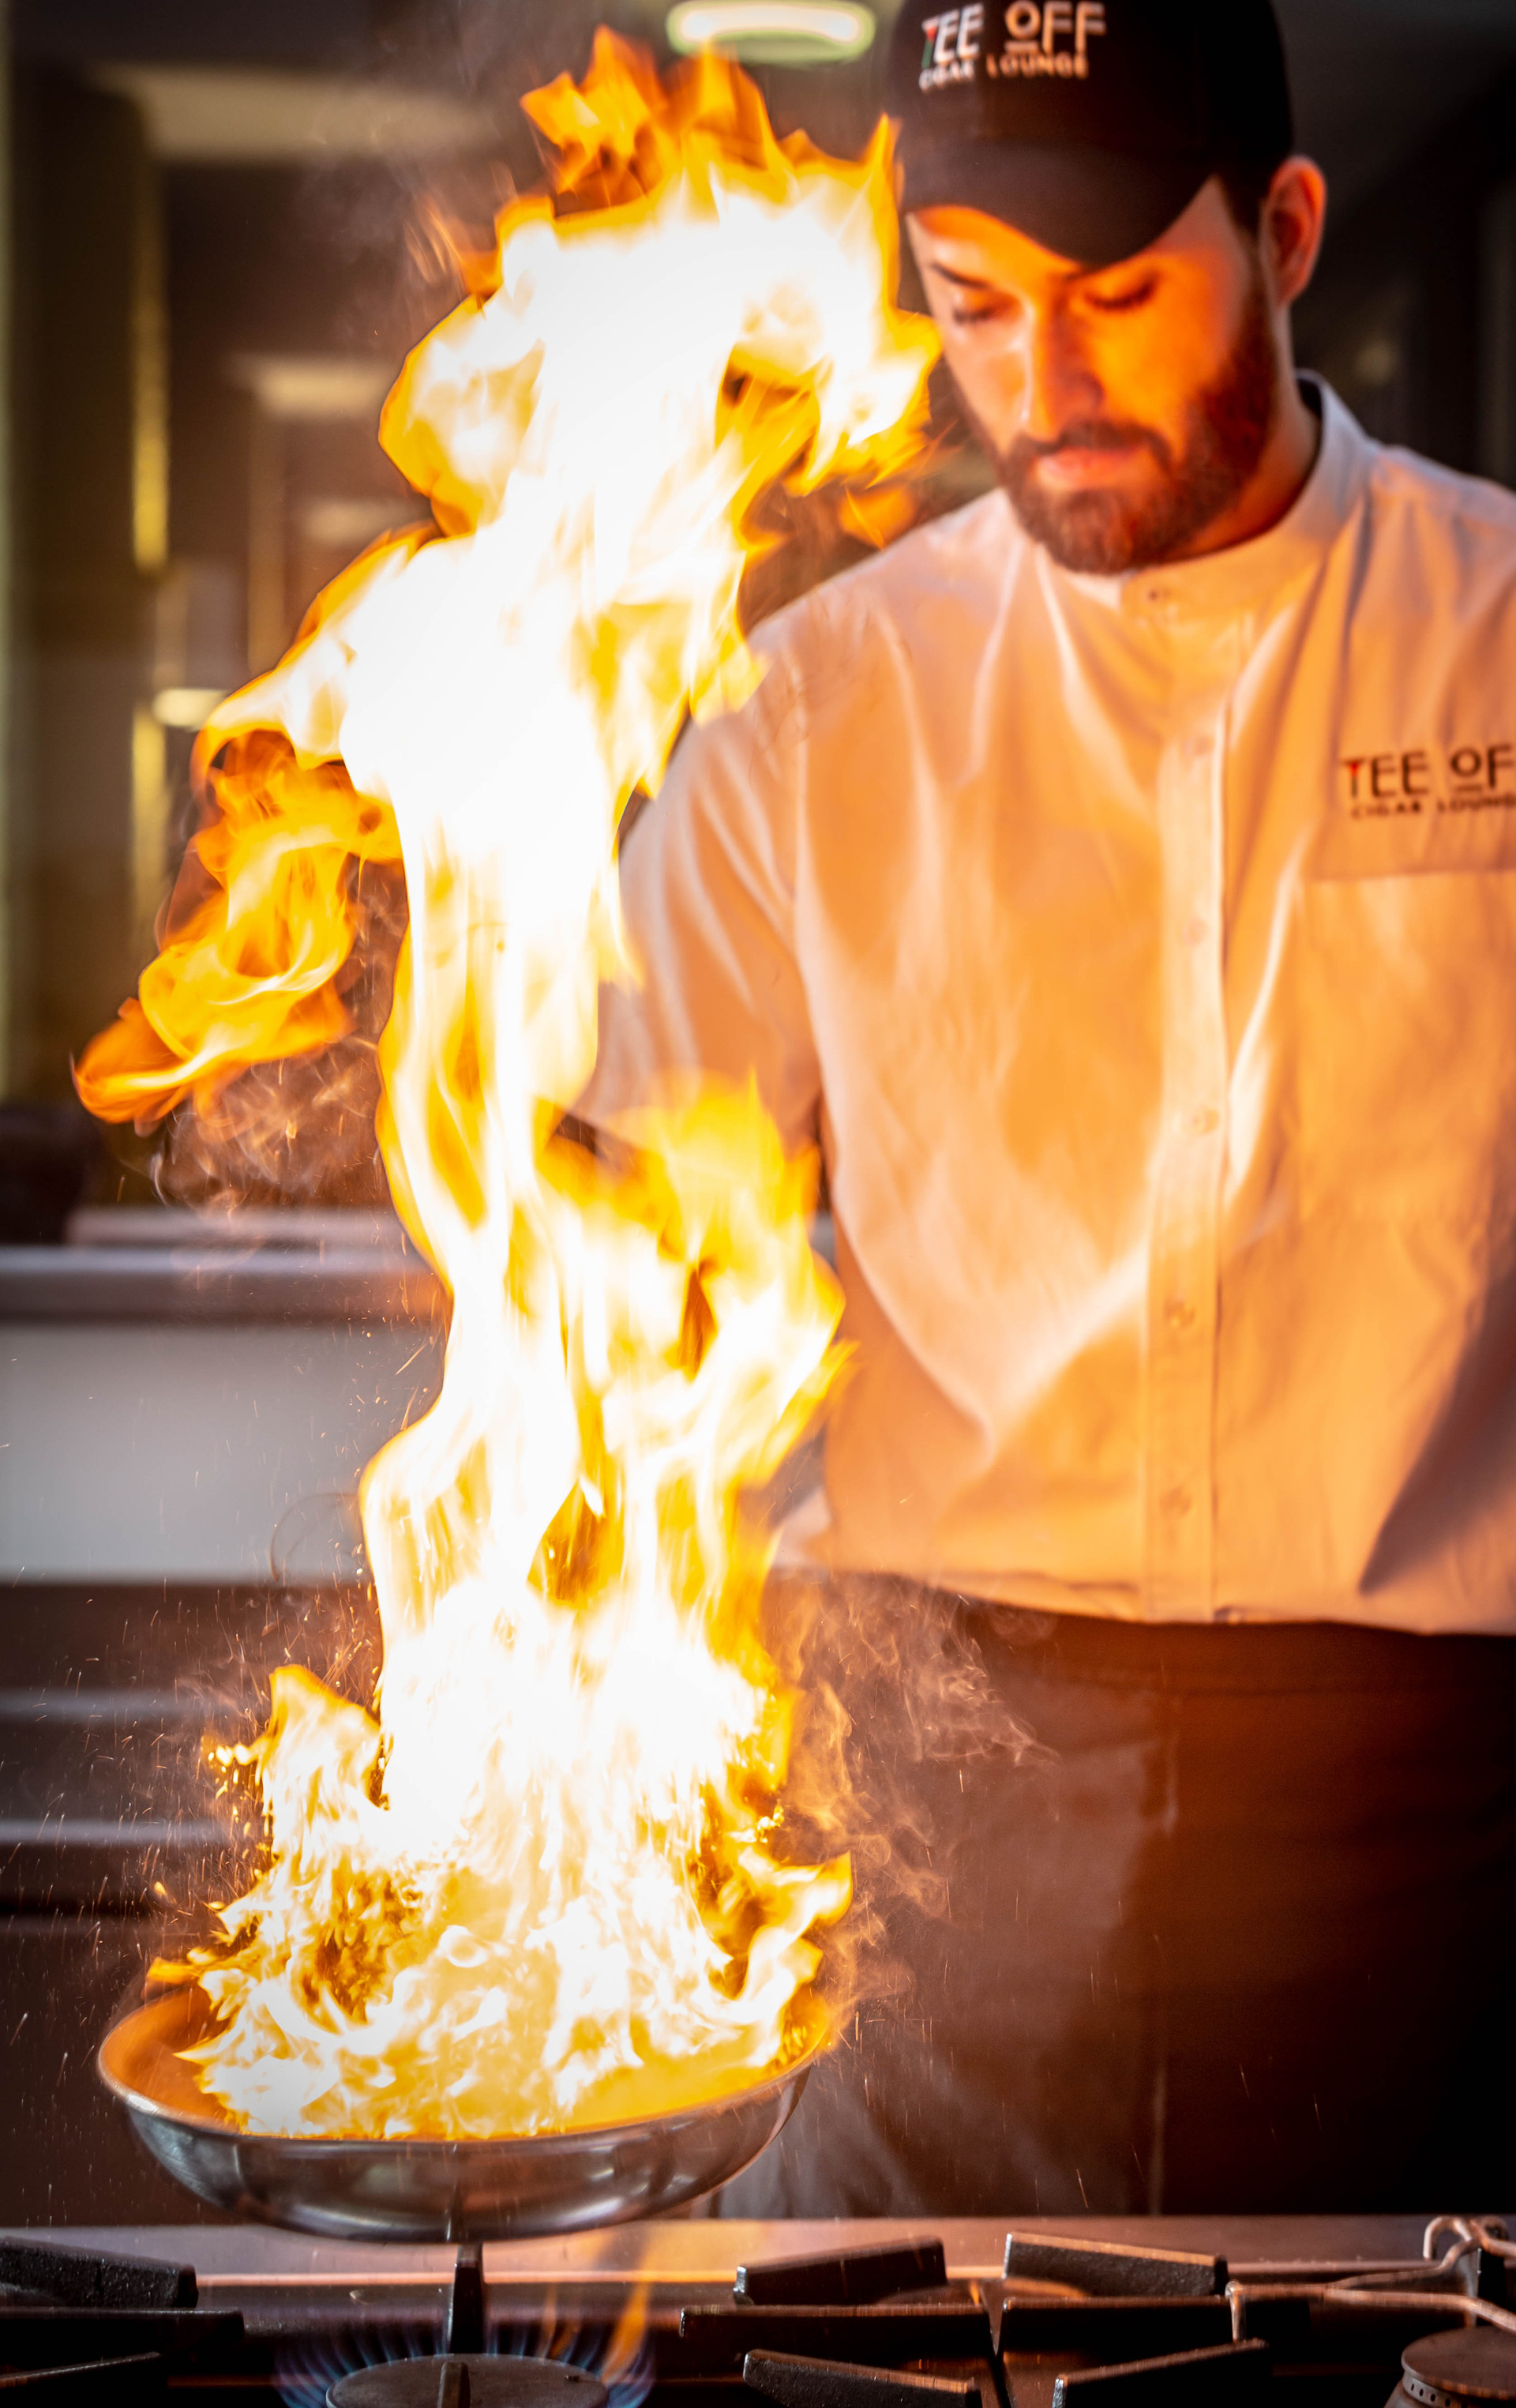 Cheff in Action -